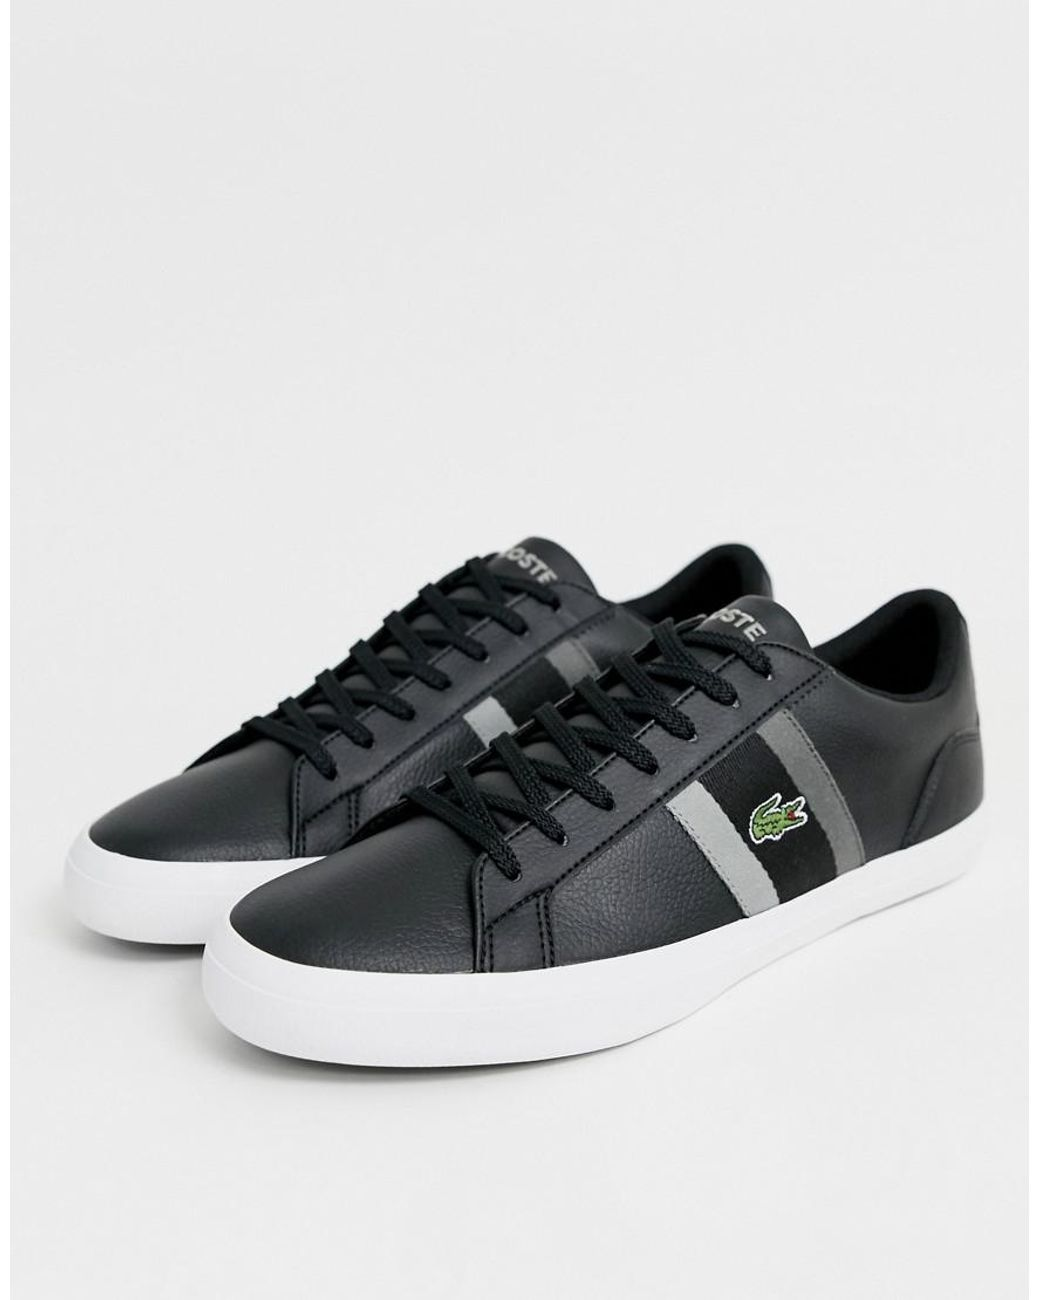 e9b343bcba89 Lacoste Lerond Trainers With Side Stripe In Black Leather in Black for Men  - Lyst